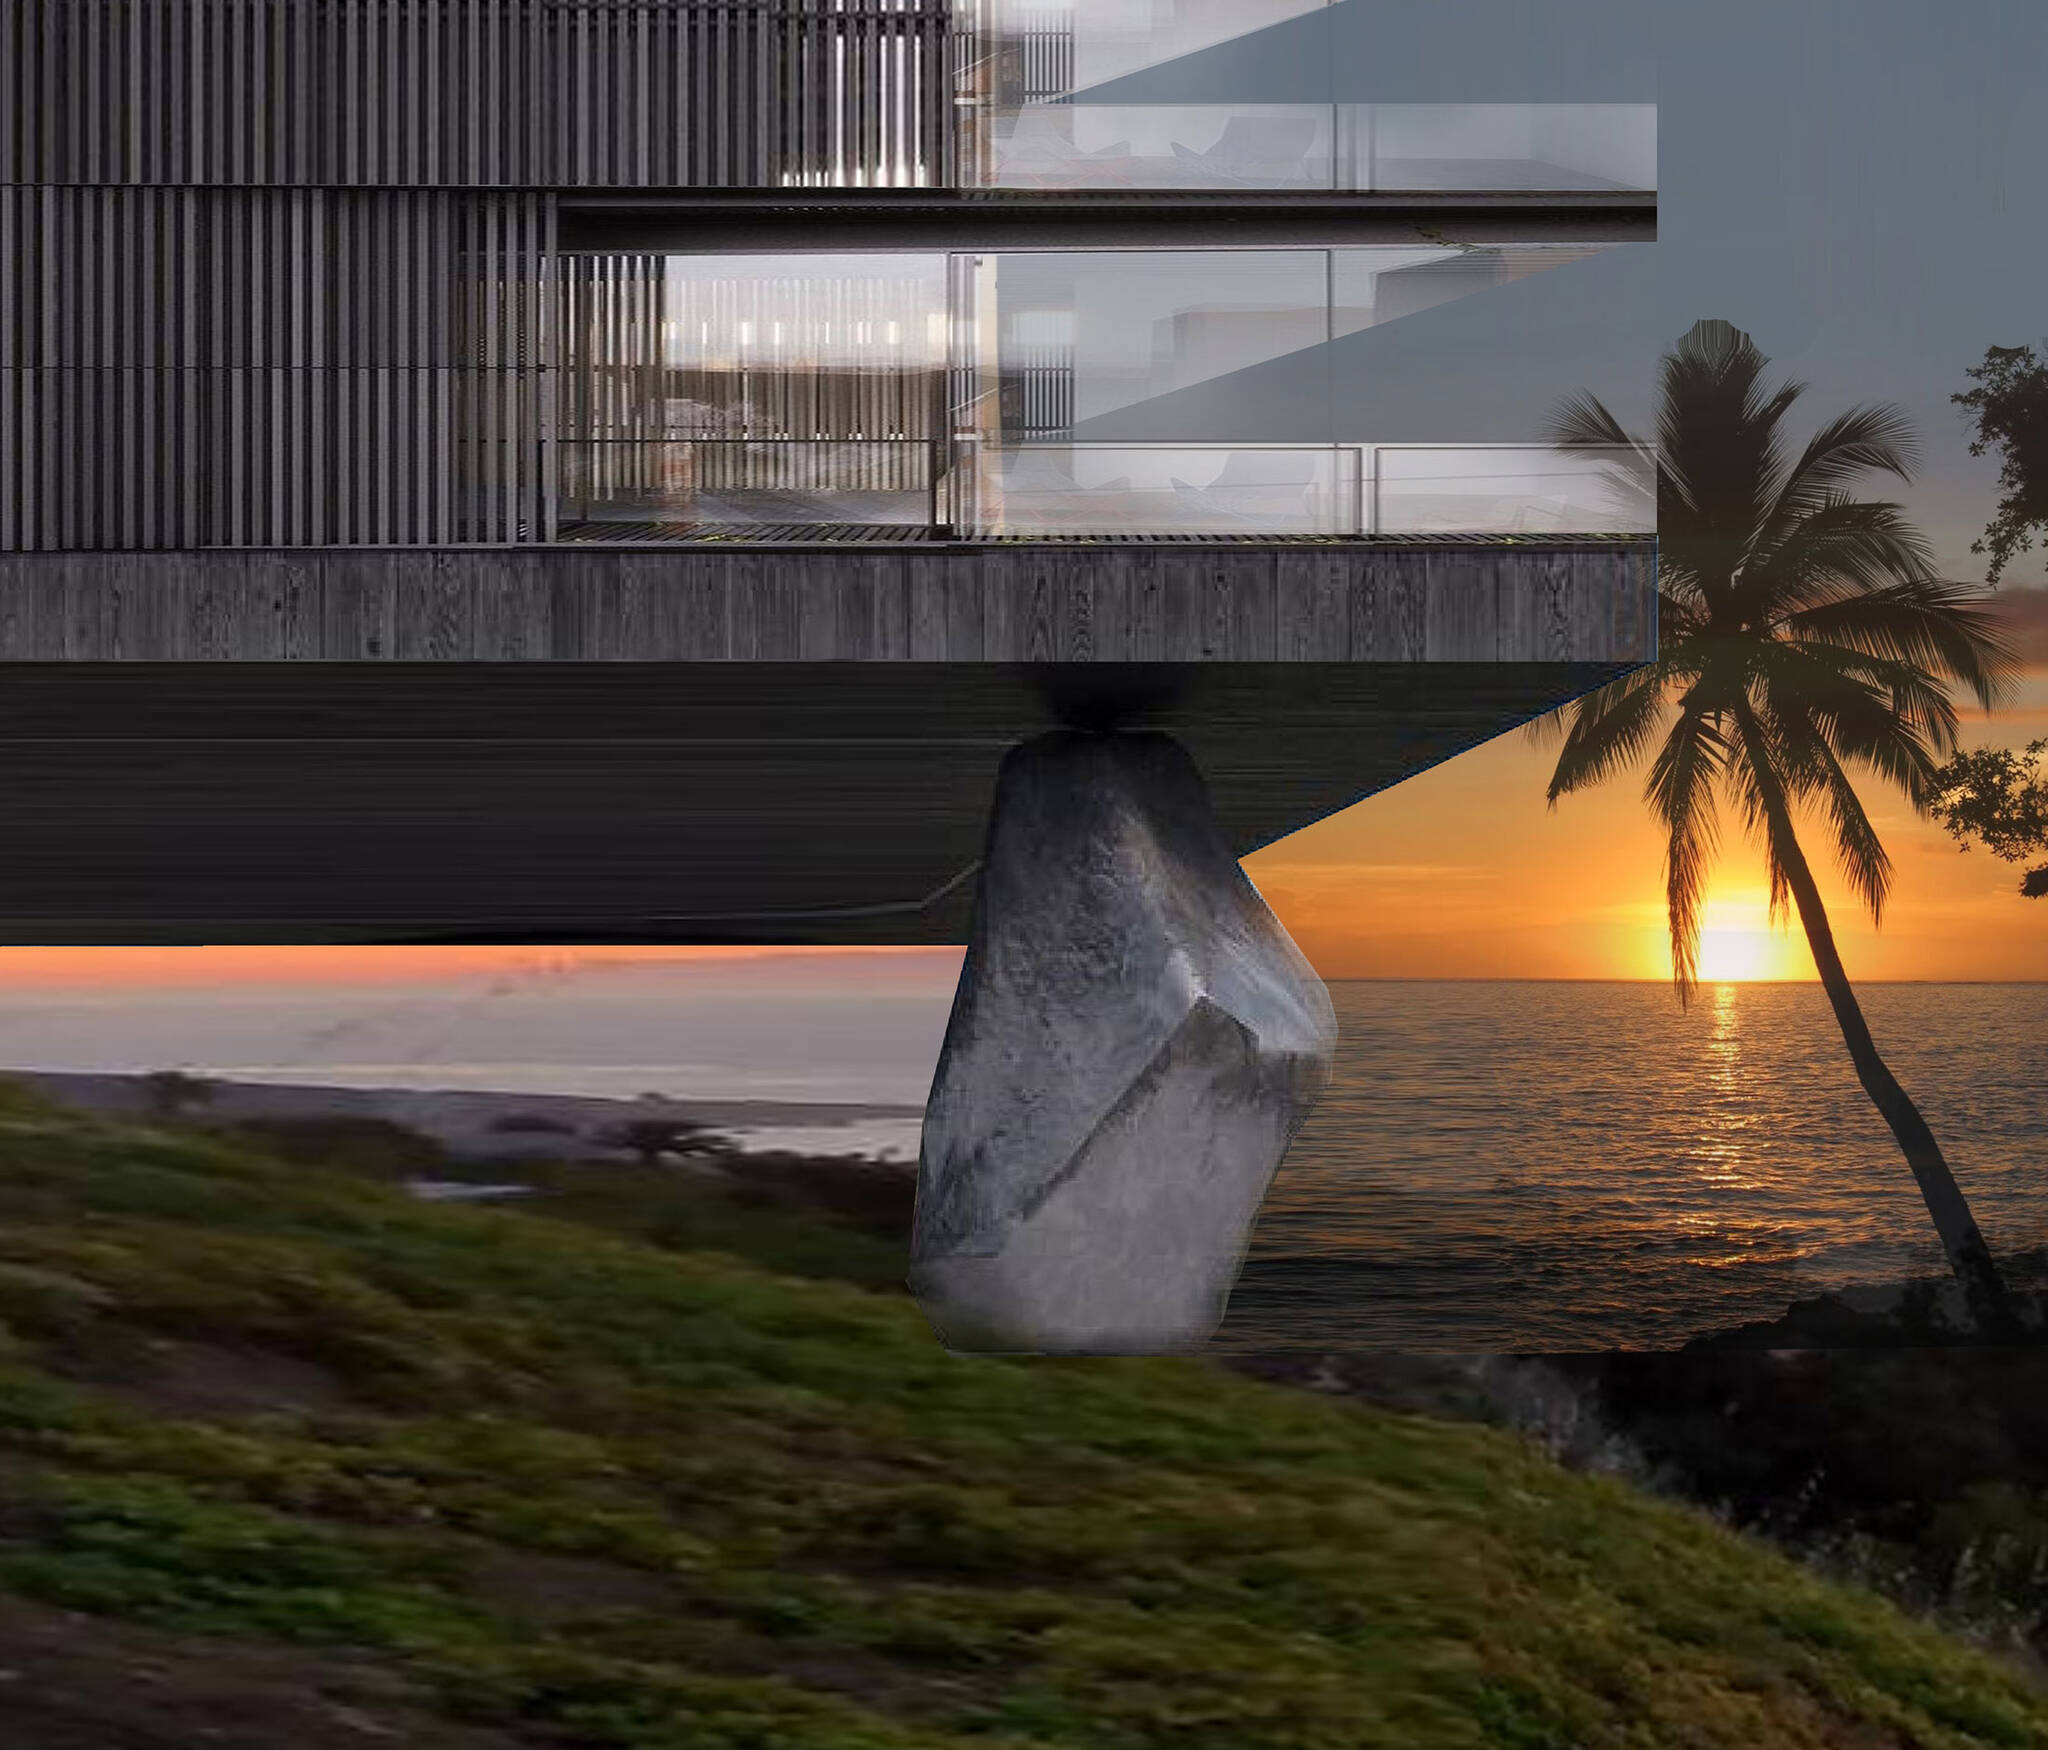 Stone structure on the Nevisian Luxury Resort project designed by the architecture studio Danny Forster & Architecture. A luxury resort with restaurants, villas, spas, a conference center, and the world's first 5-star modular hotel located in Nevis island in the Lesser Antilles